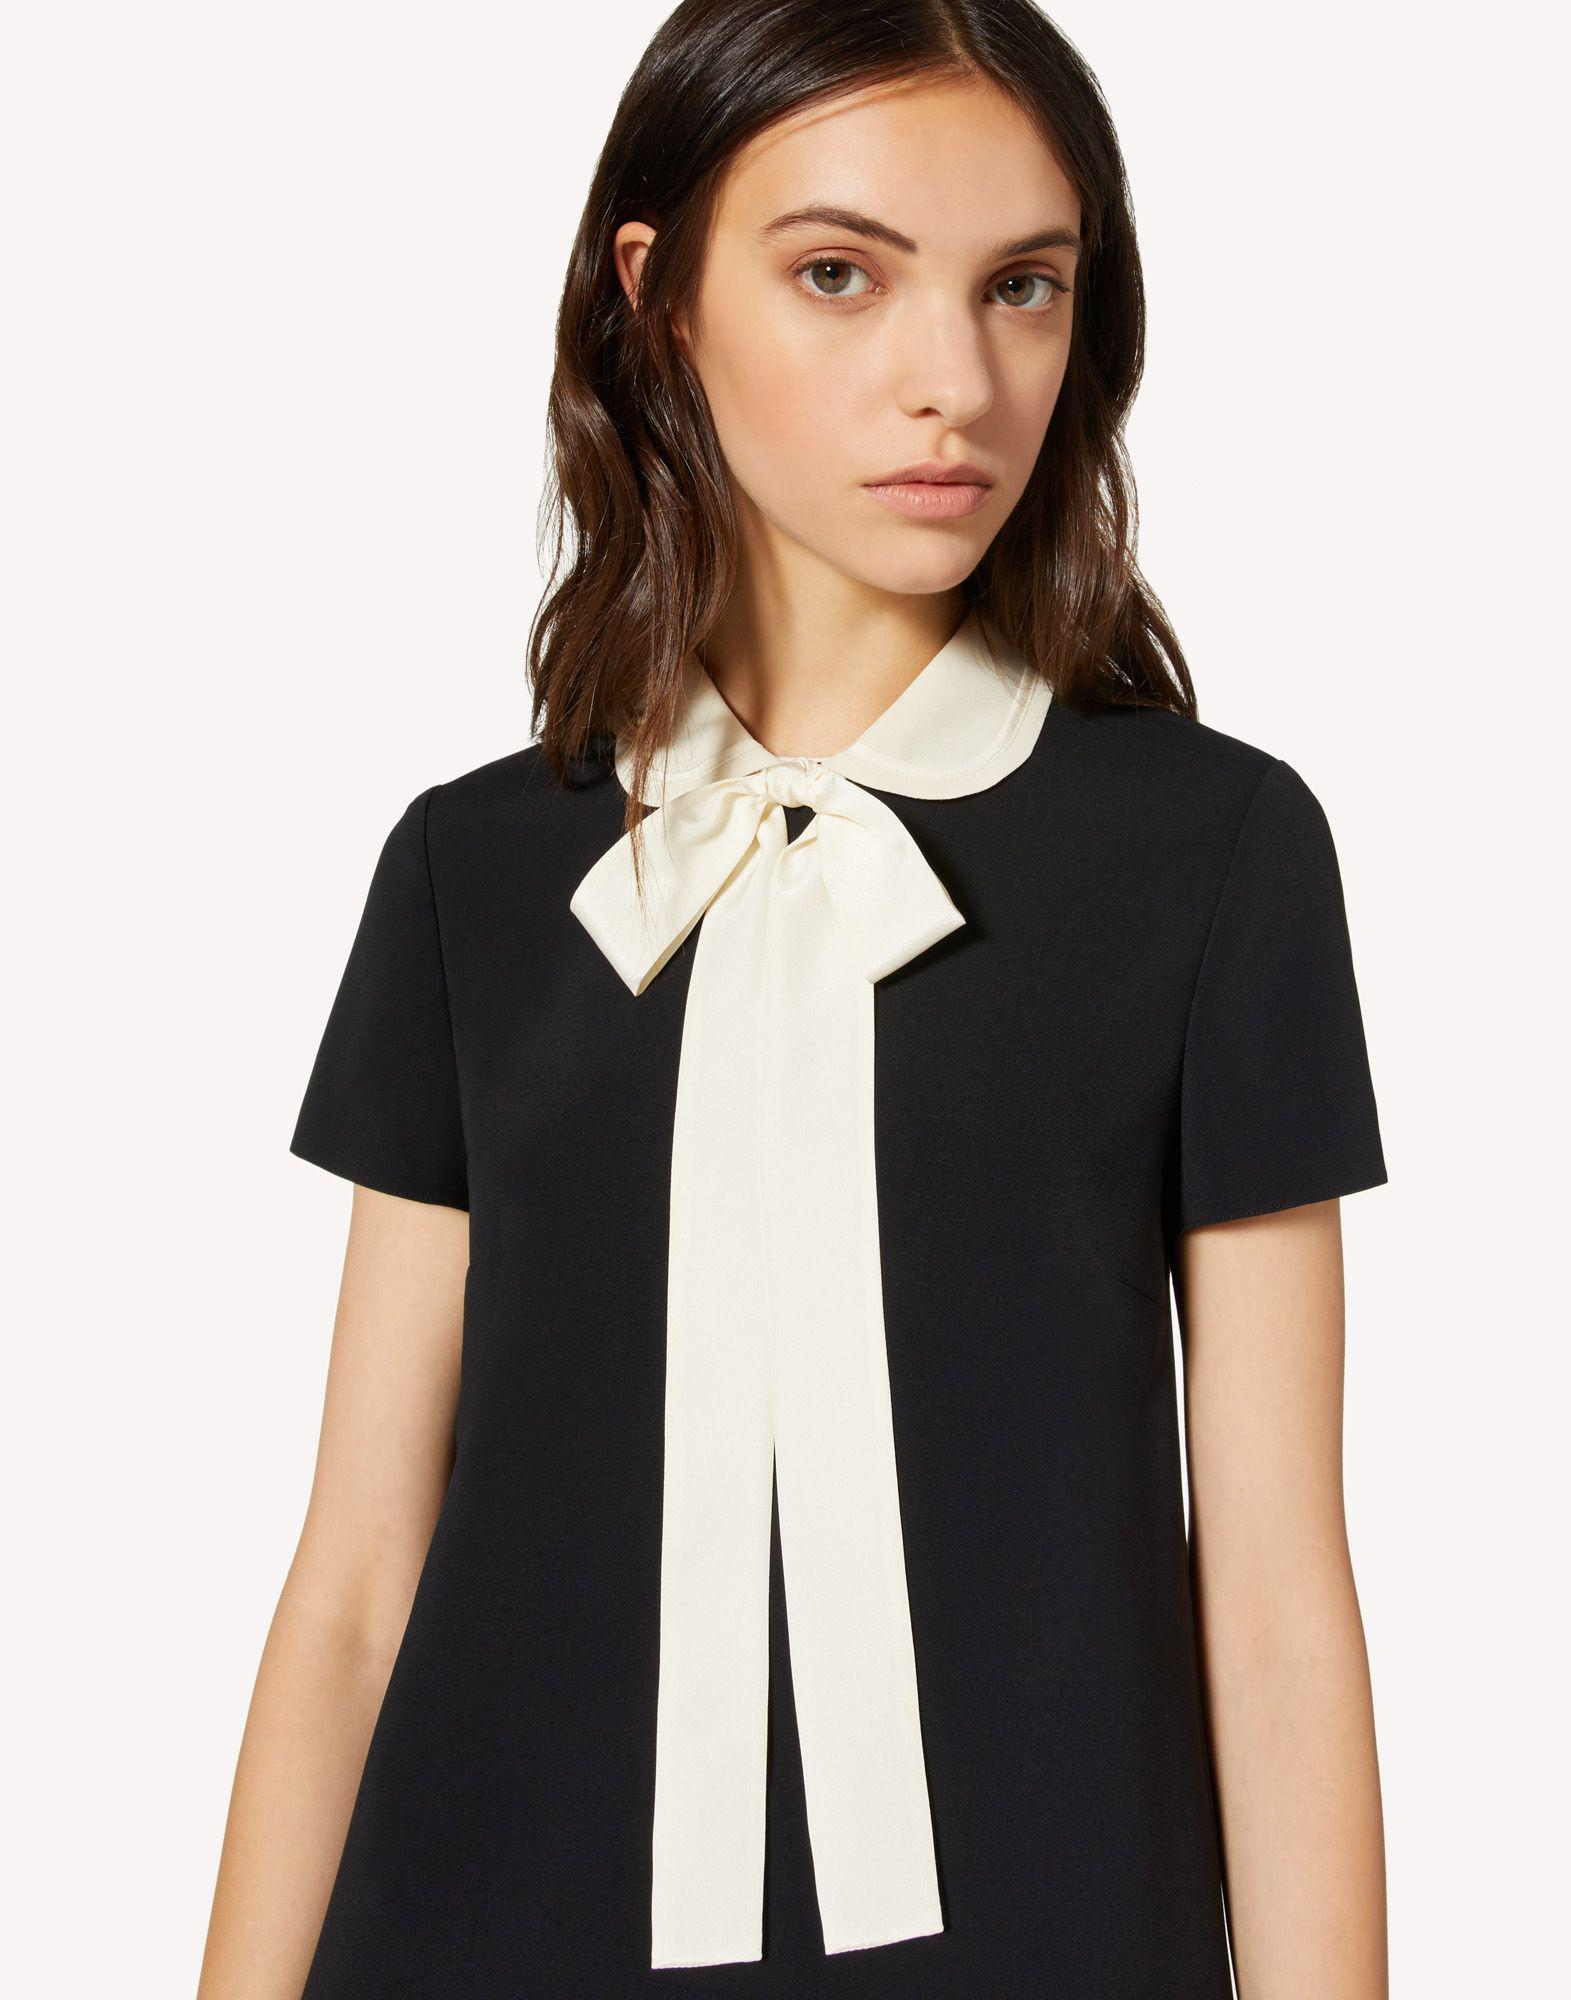 FRISOTTINO DRESS WITH COLLAR DETAIL 3